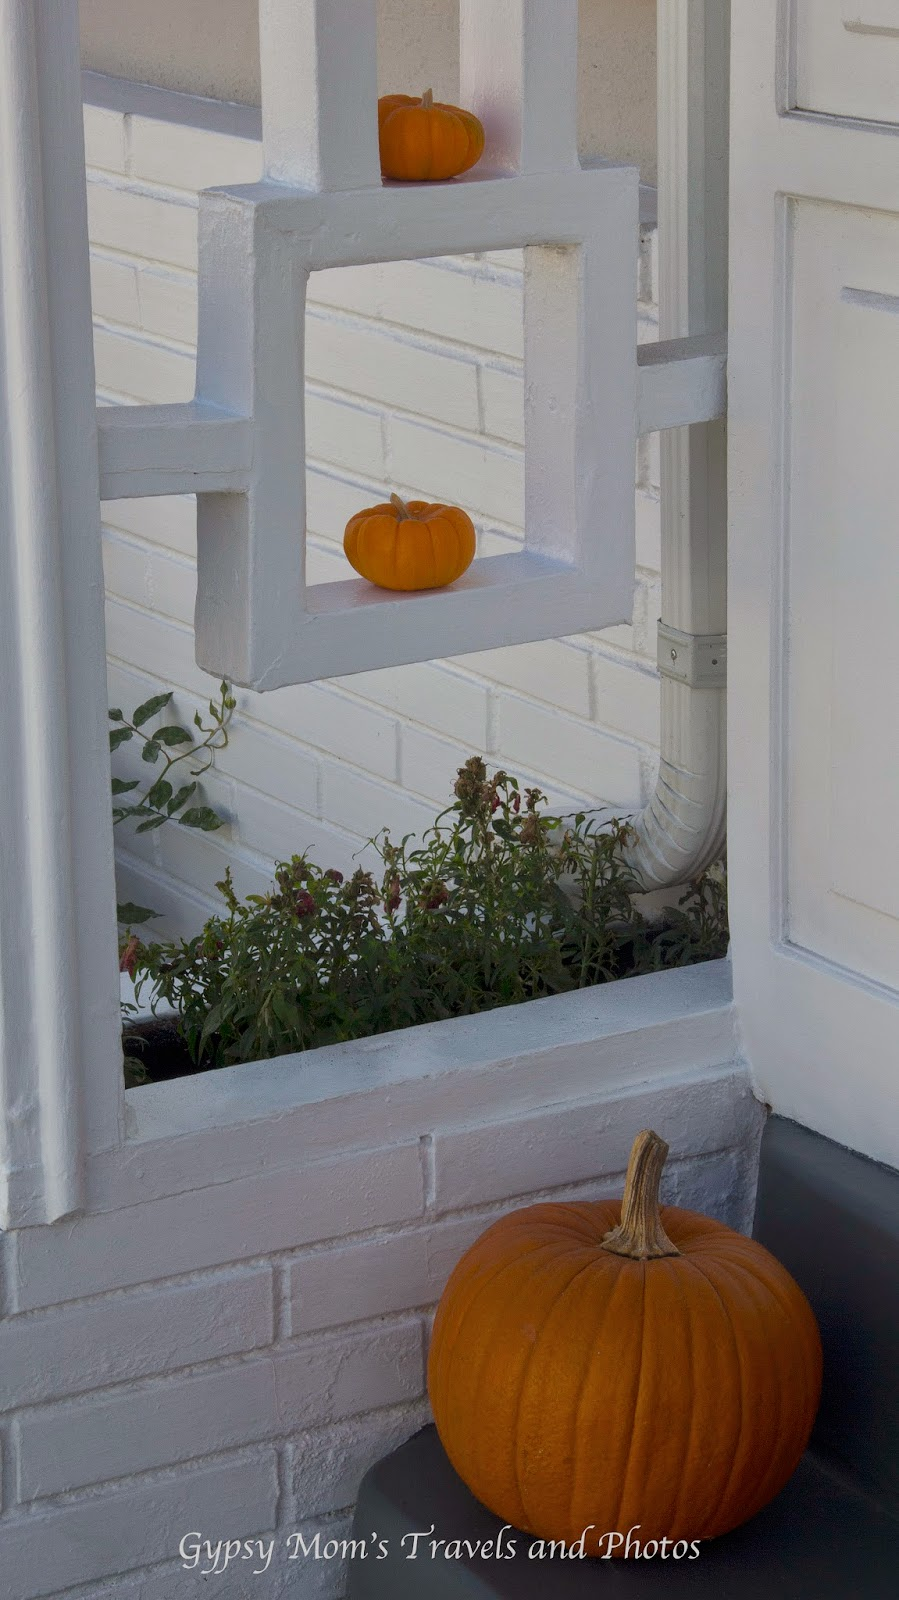 Two small pumpkins on white shelves and one large pumpkin